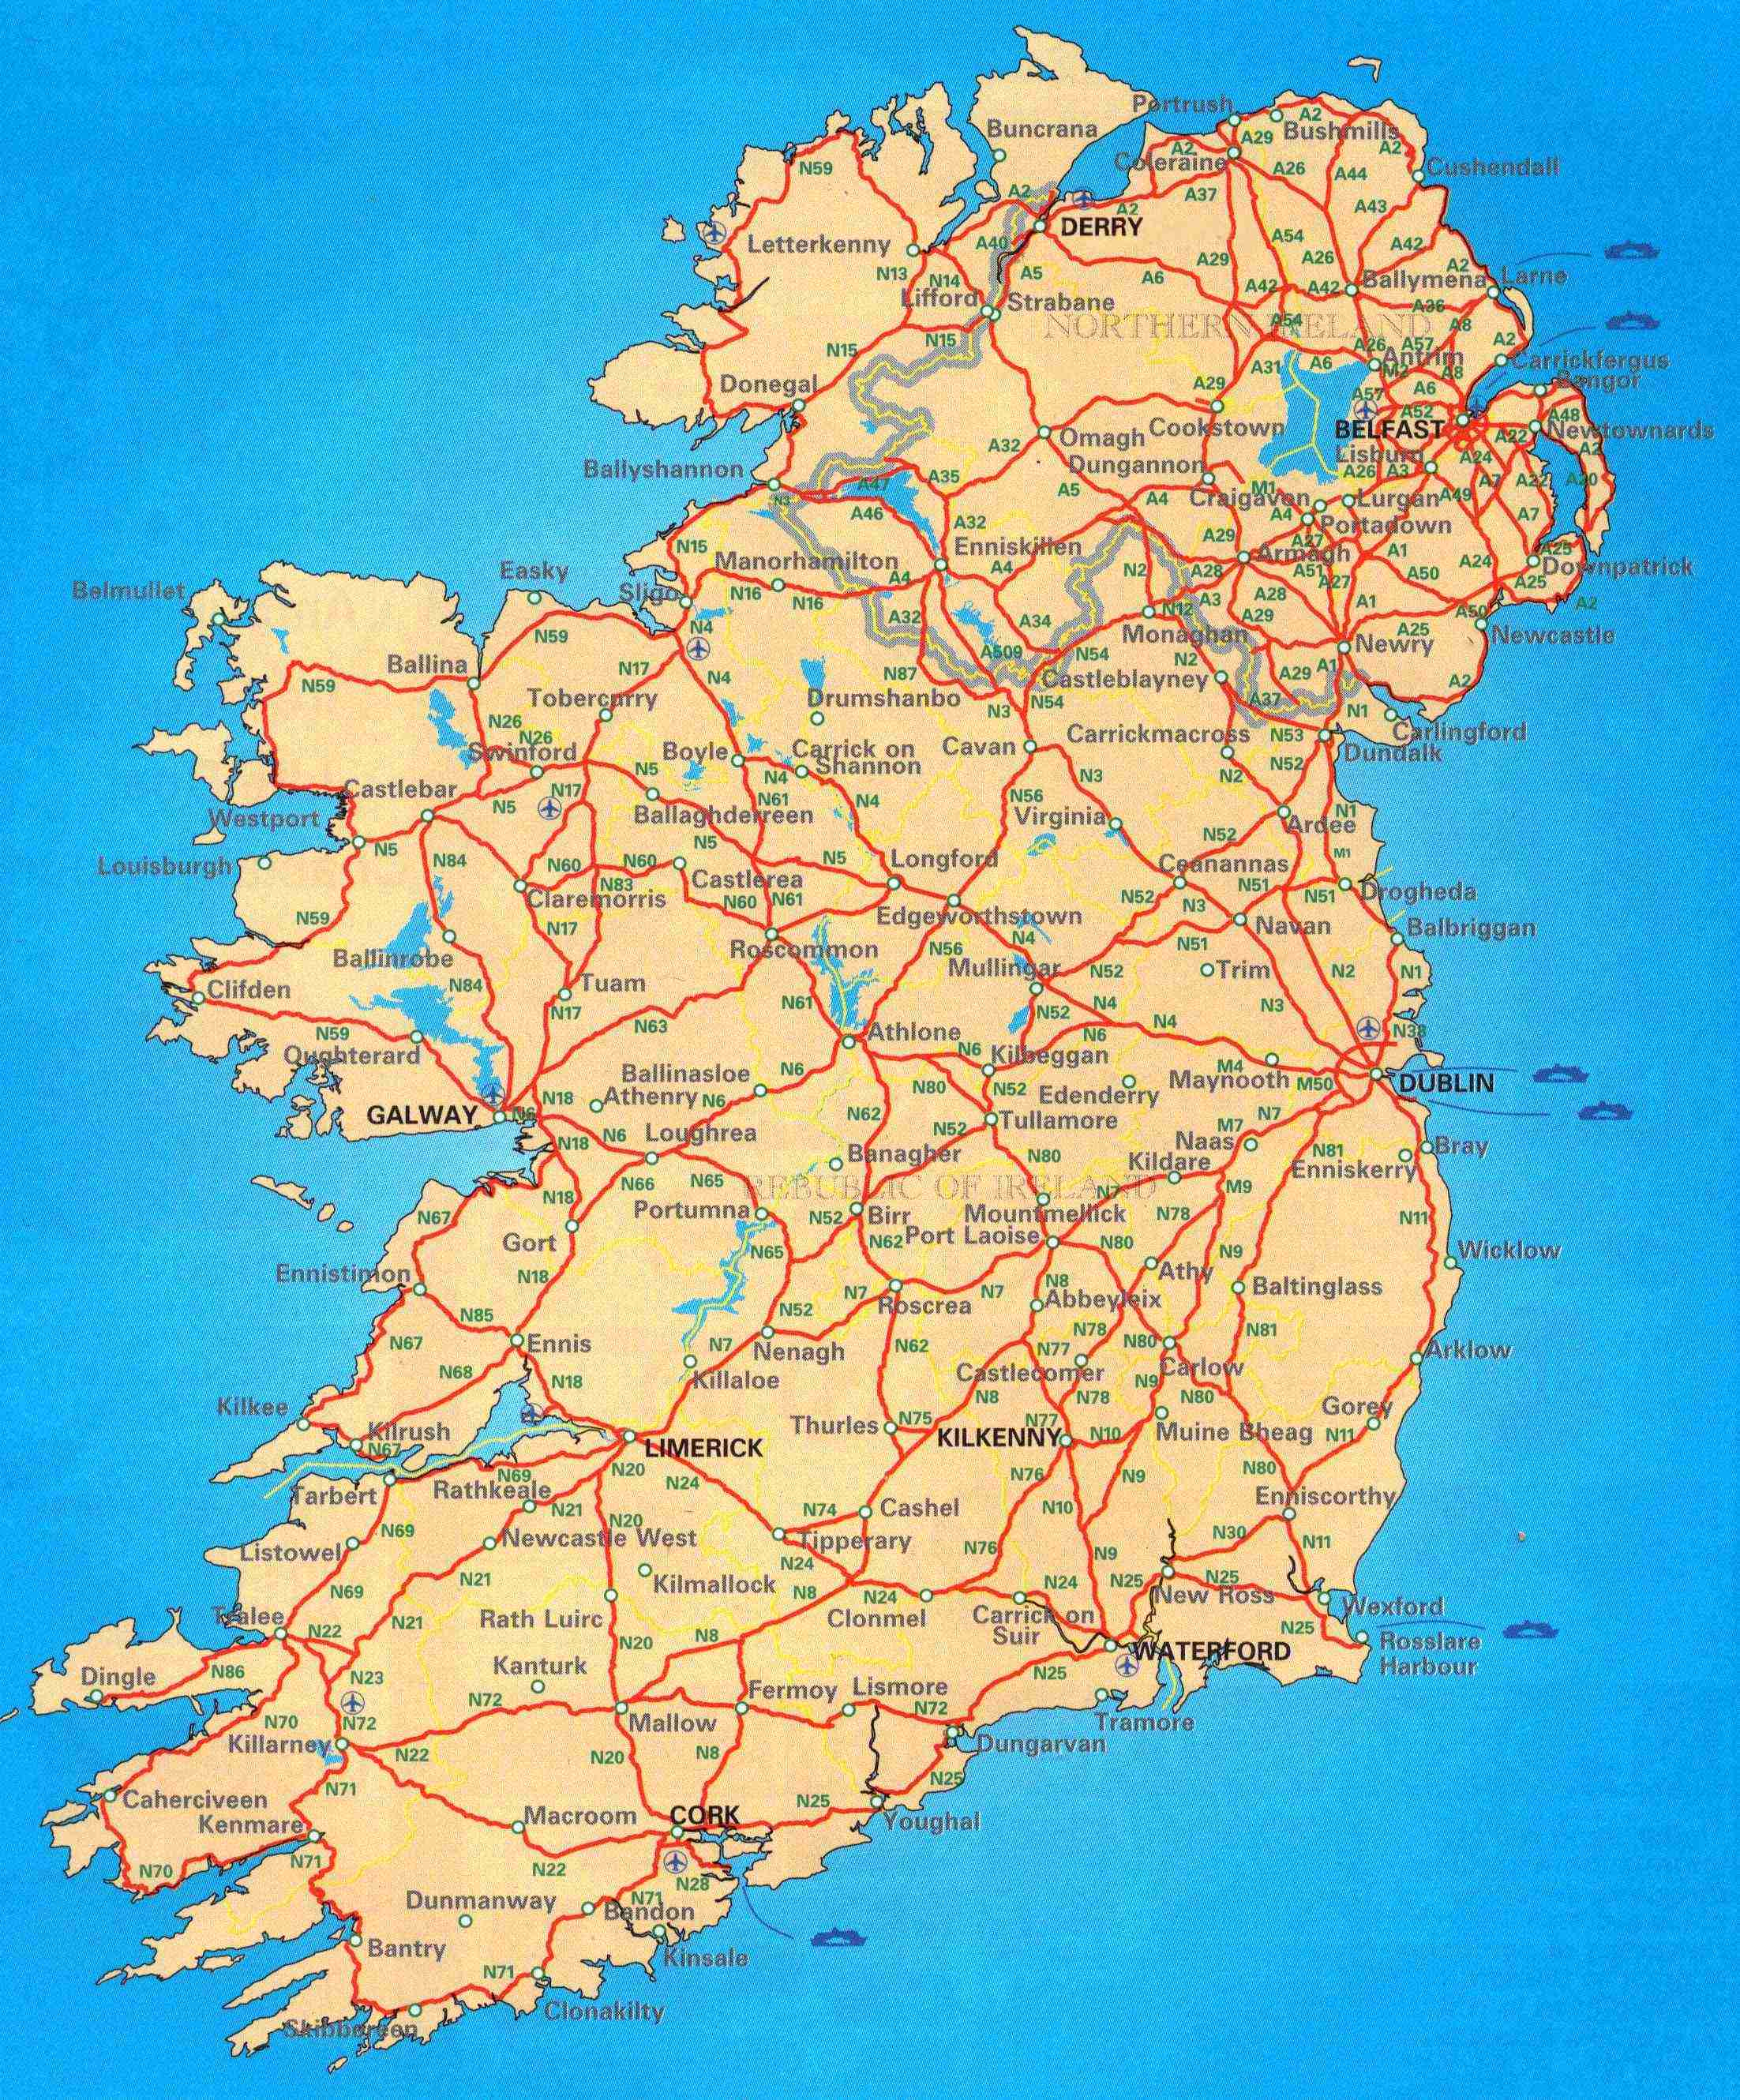 Large scale road map of Ireland Ireland Europe Mapsland Maps